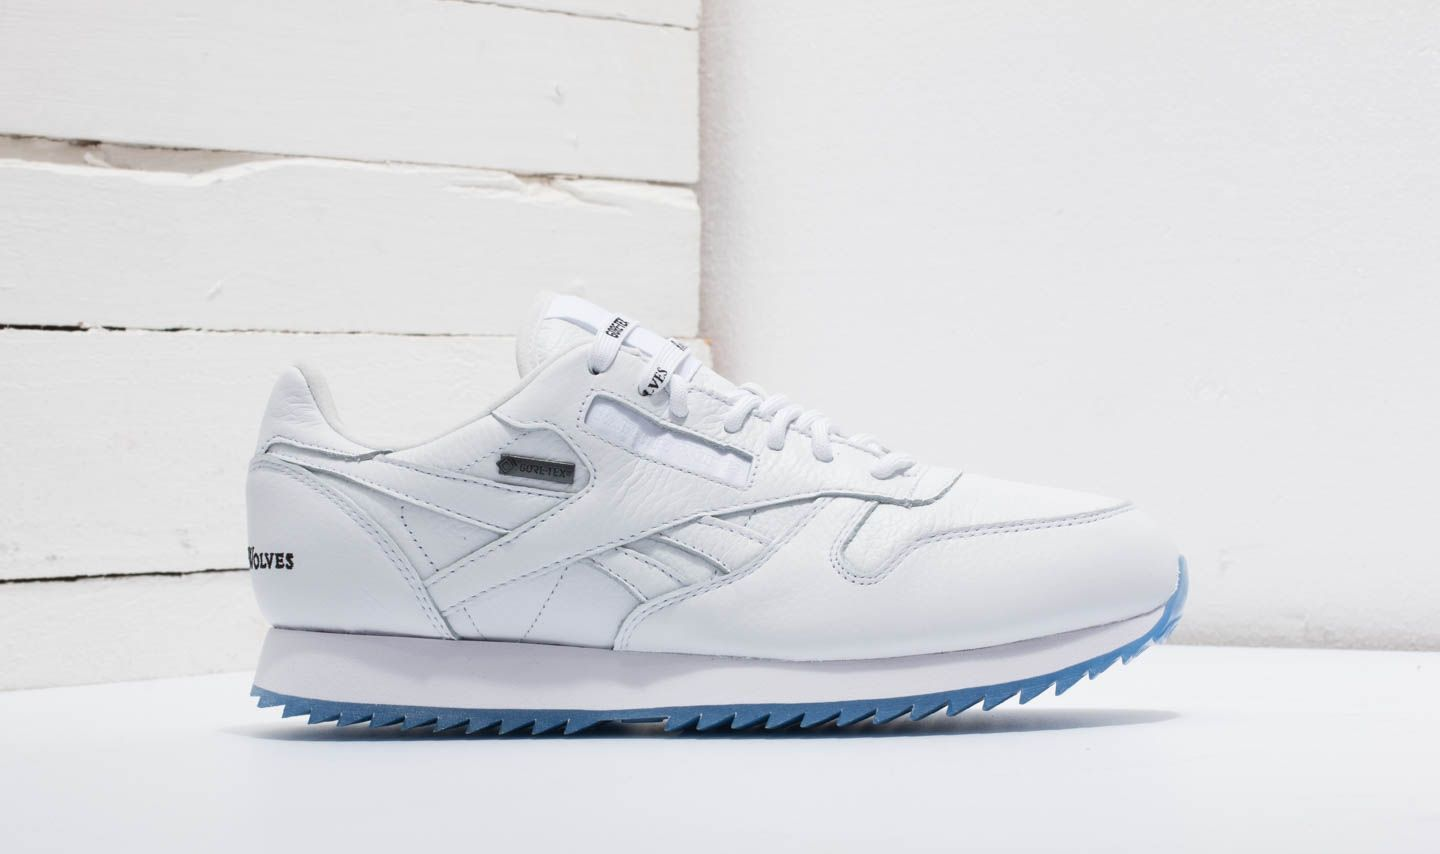 219ac74373c Reebok x Raised by Wolves Classic Leather Ripple Gore-Tex White  Black-Ice